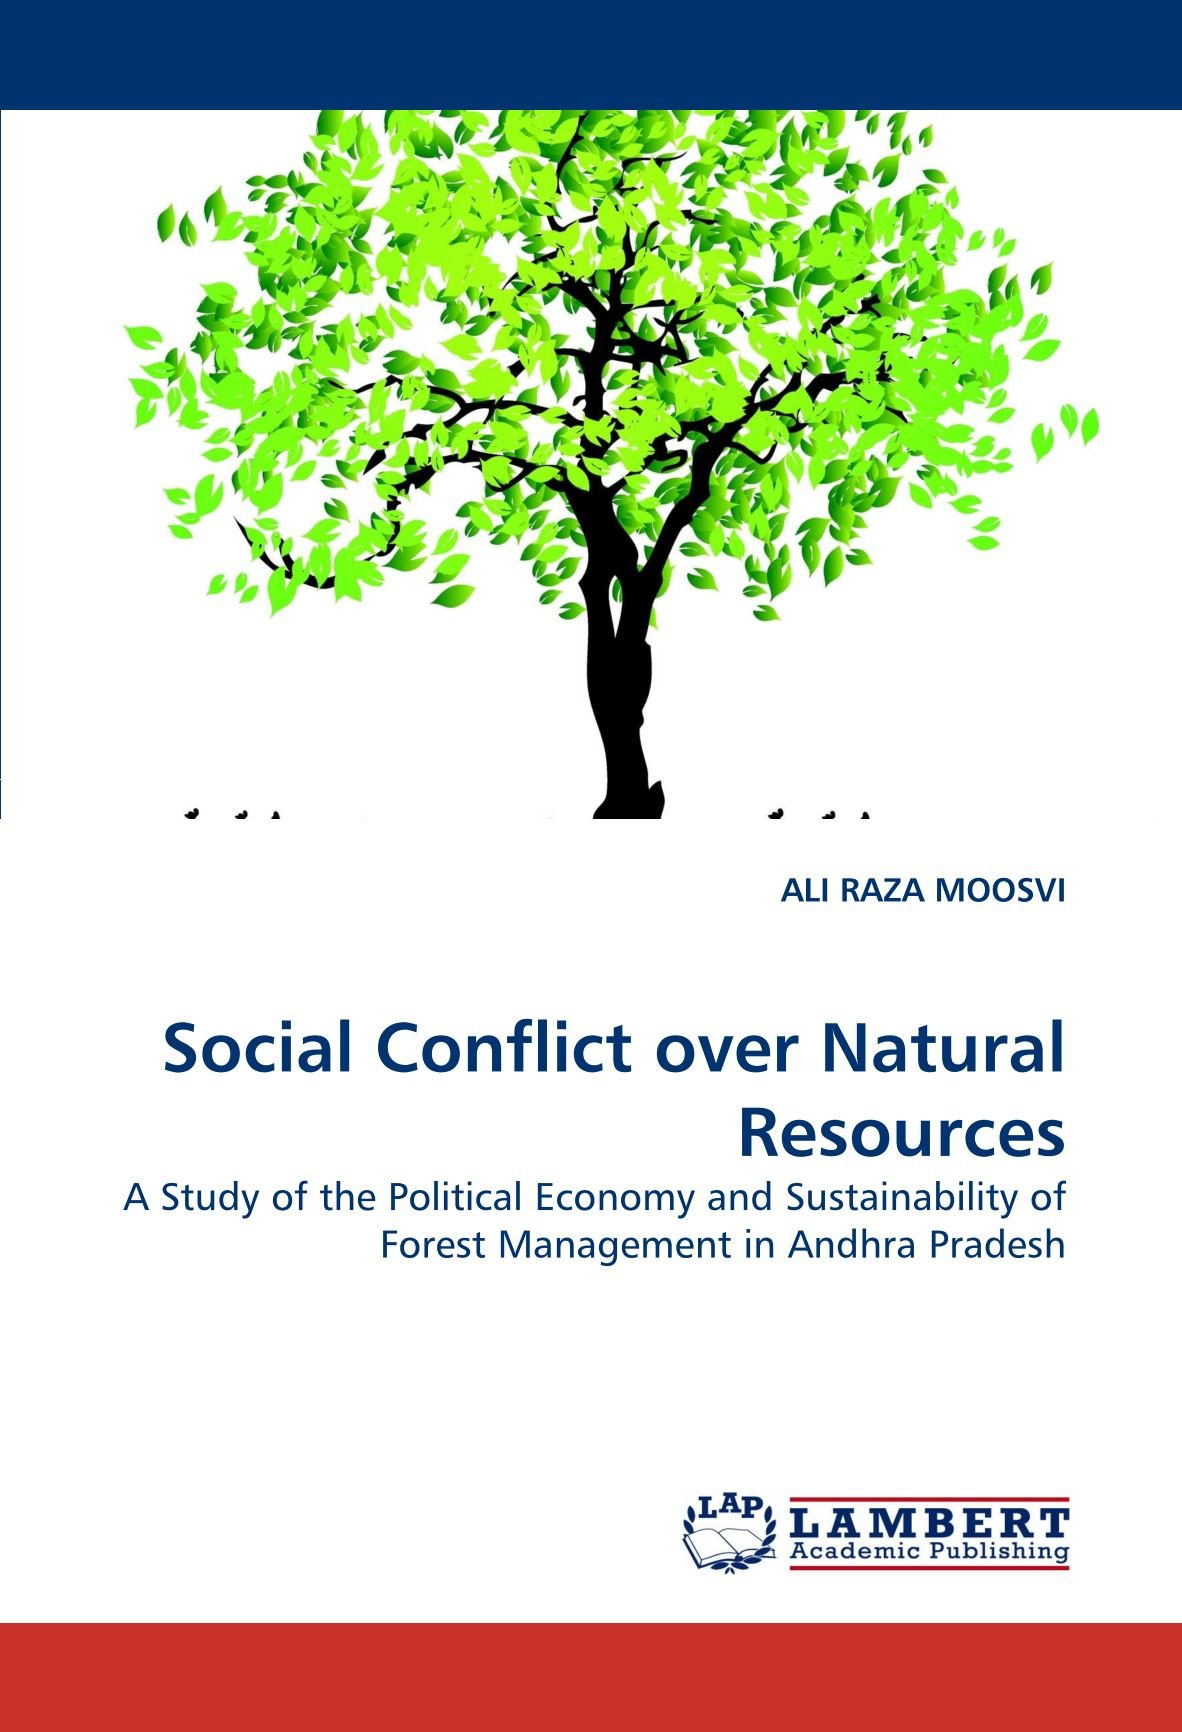 Social Conflict over Natural Resources: A Study of the Political Economy and Sustainability of Forest Management in Andhra Pradesh ePub fb2 book